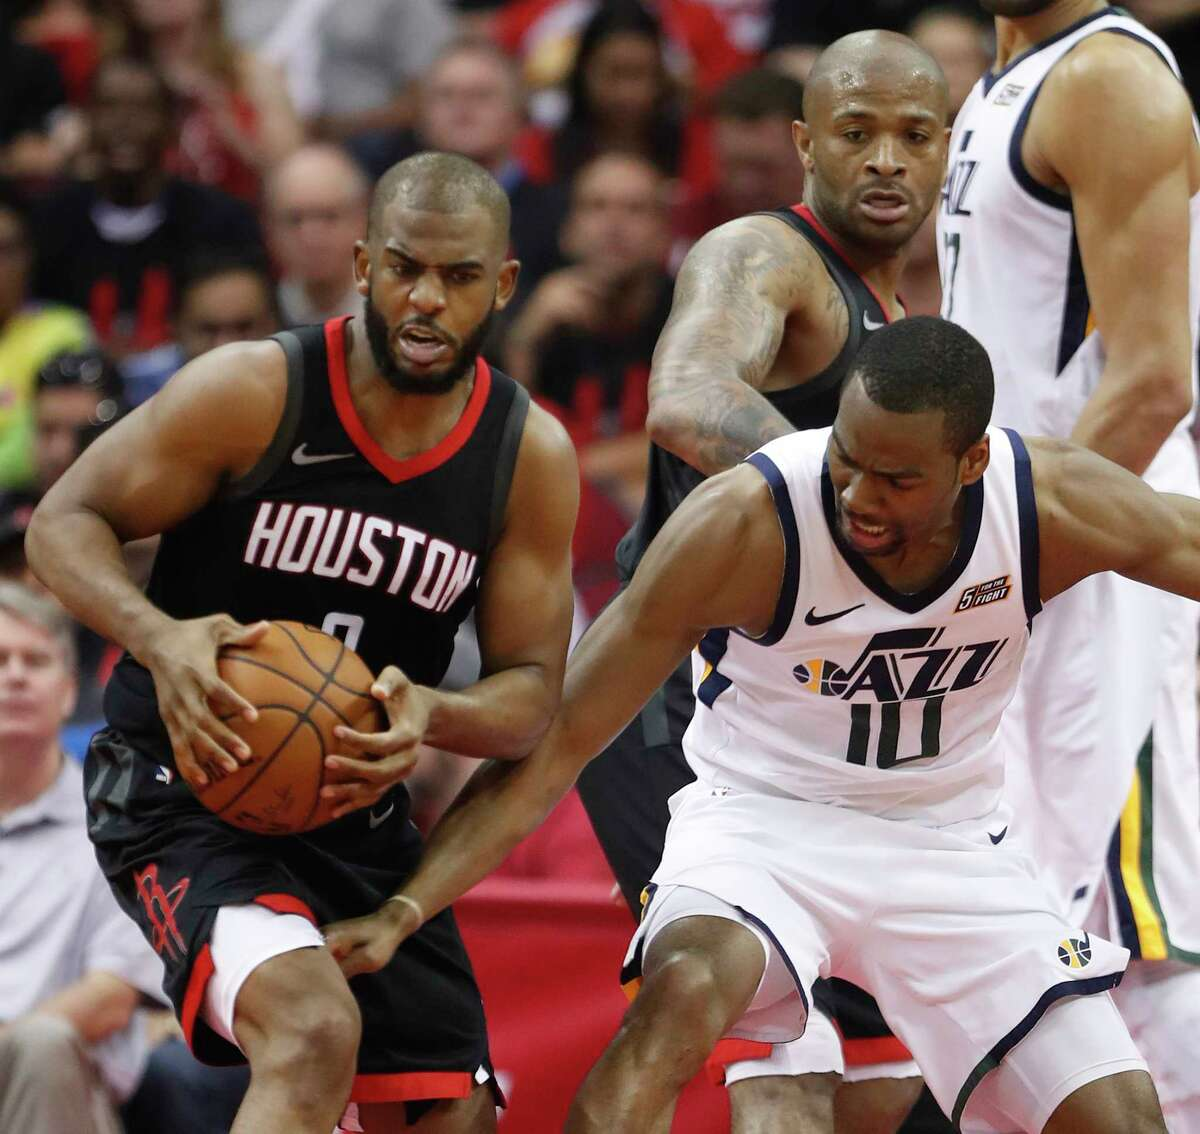 ROCKETS' MOST INTRIGUING HOME GAMES Utah Jazz (Oct. 24, Dec. 17) Utah didn't make any significant moves this offseason, but the development of Donovan Mitchell, along with center Rudy Gobert's emergence as an elite defender make the Jazz an interesting team. Mitchell averaged 20.5 points and 3.7 assists in the regular season and helped Utah get to the second round of the playoffs, before losing to Houston in five games. The Louisville product finished second in Rookie of the Year voting. Gobert won the league's Defensive Player of the Year award. The Rockets beat the Jazz in all four of their regular-season meetings and knocked them out of the playoffs in five games in the second round. But Houston took a slight step back when it didn't resign Trevor Ariza and Luc Mbah a Moute. Utah could take advantage of this and give Houston a run in the regular season and in a potential playoff matchup.